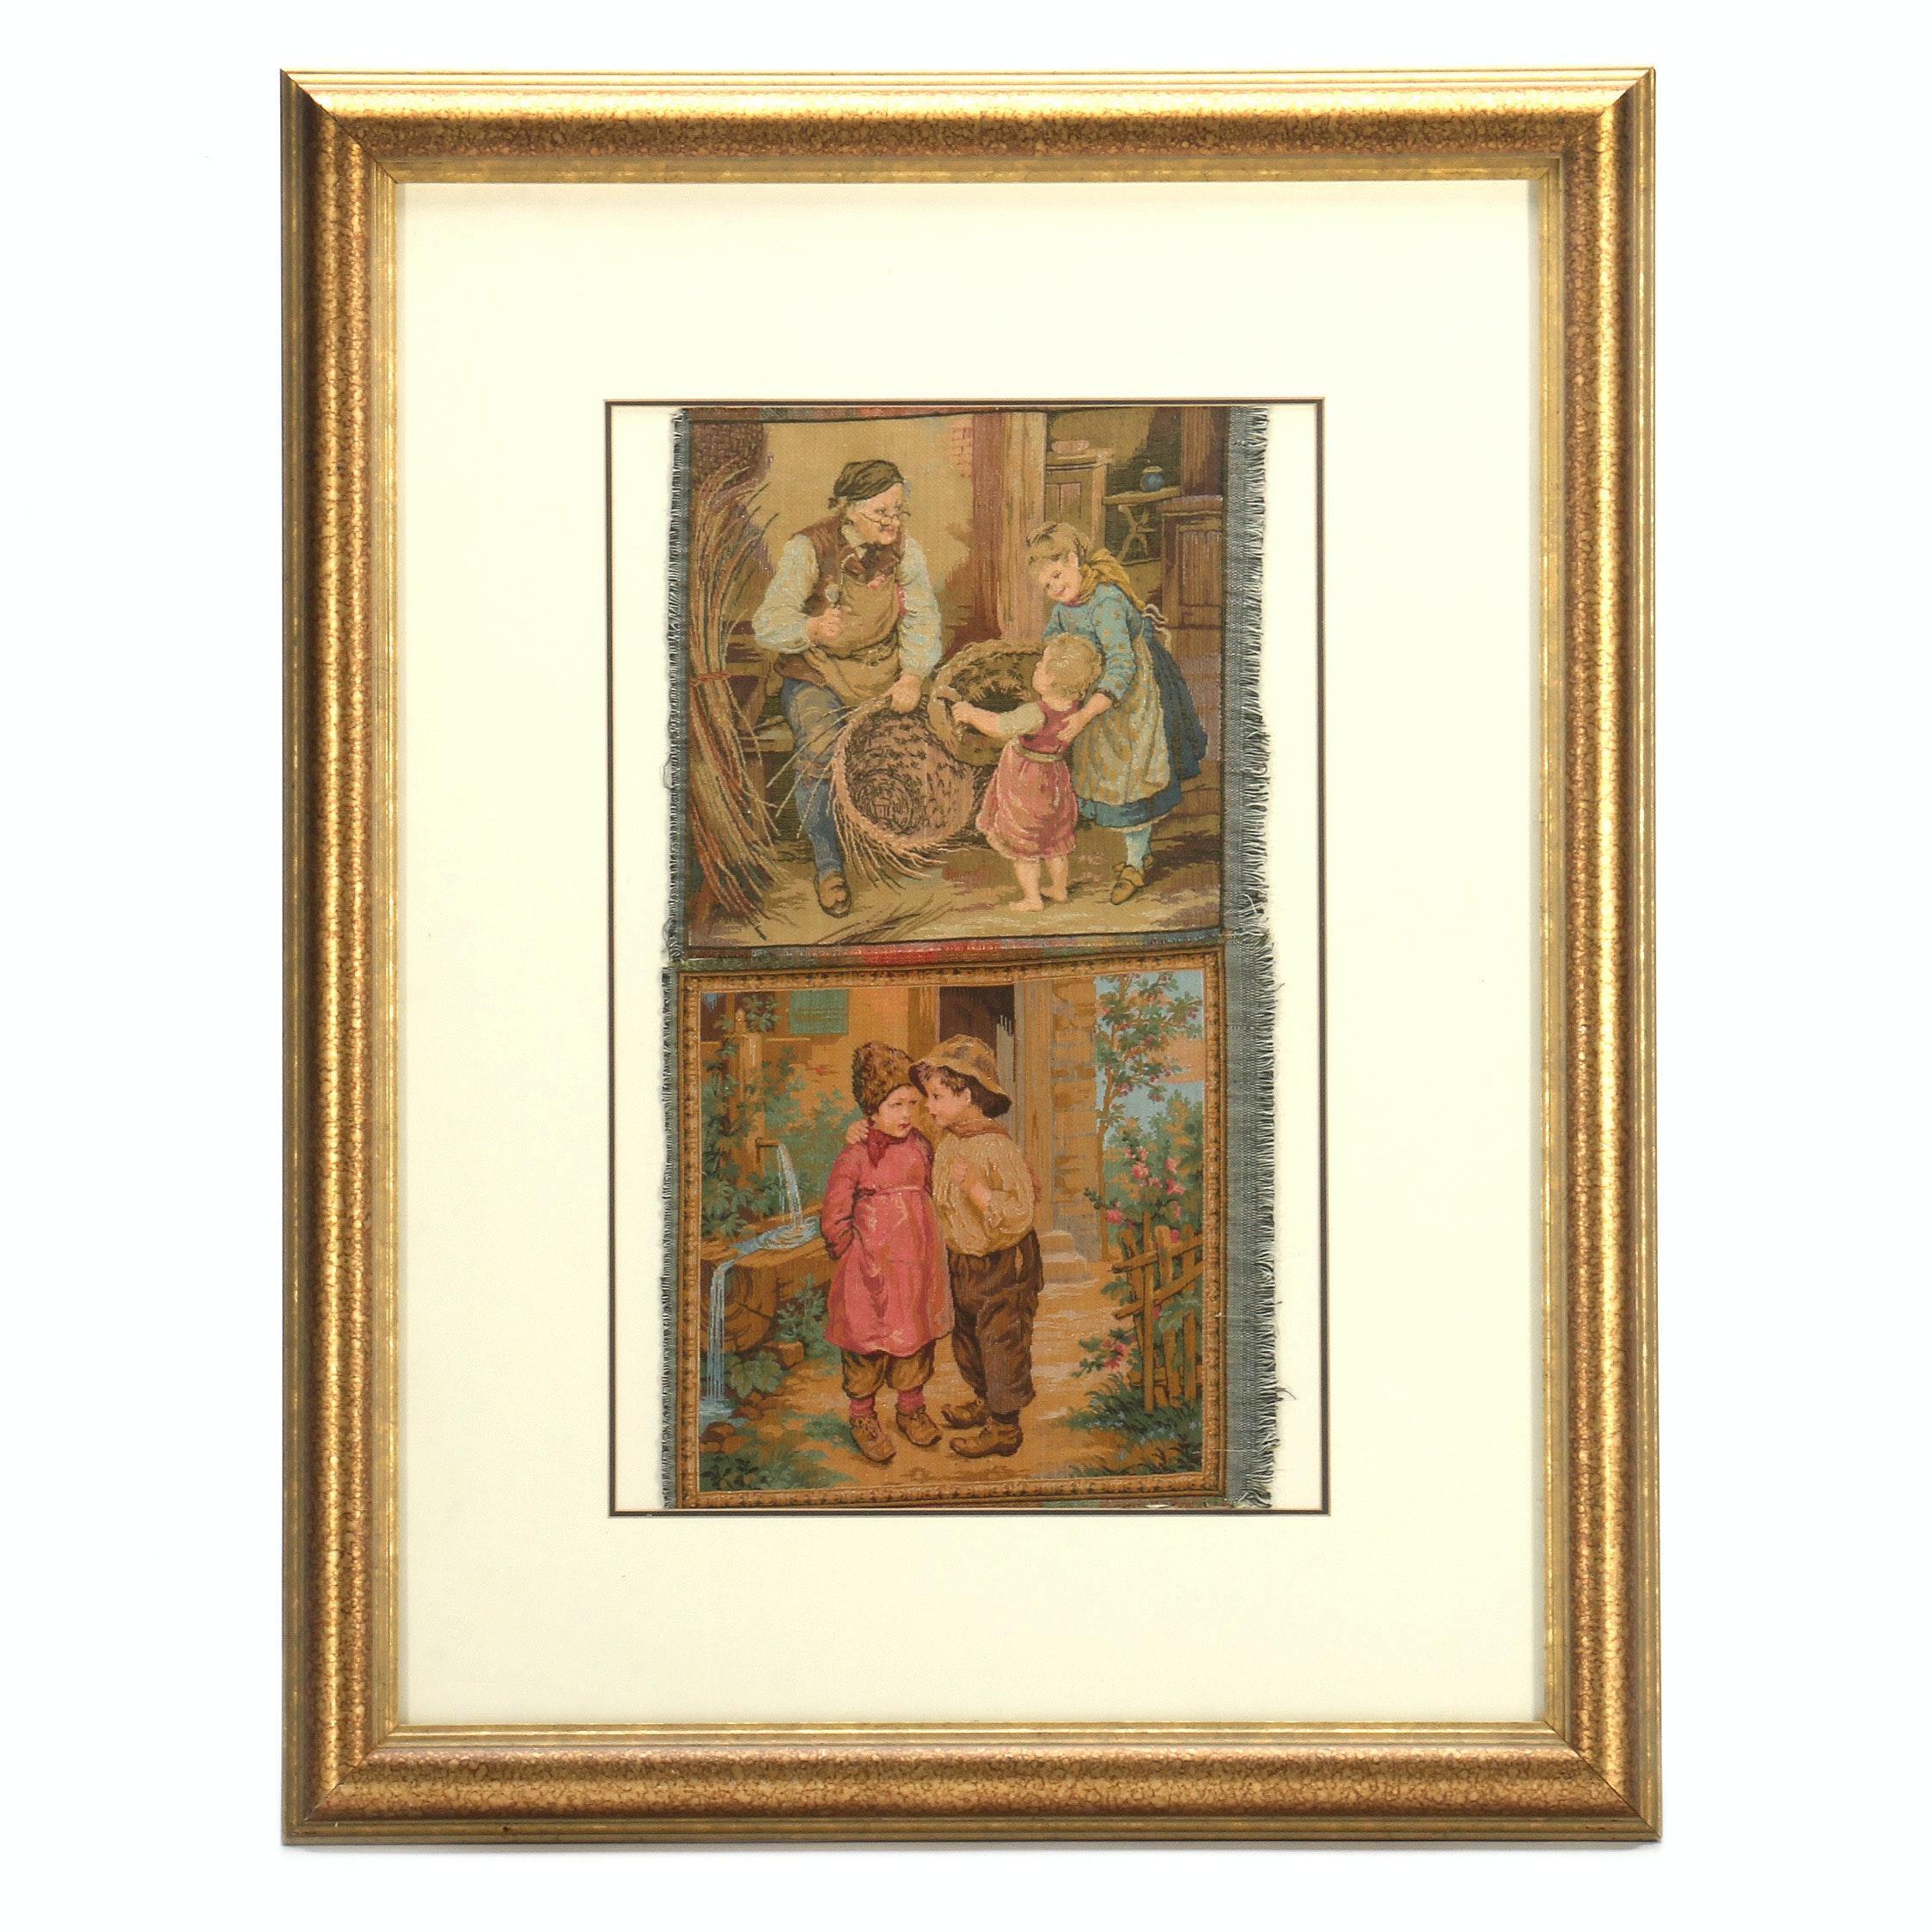 Framed Tapestry Panels Featuring Genre Scenes